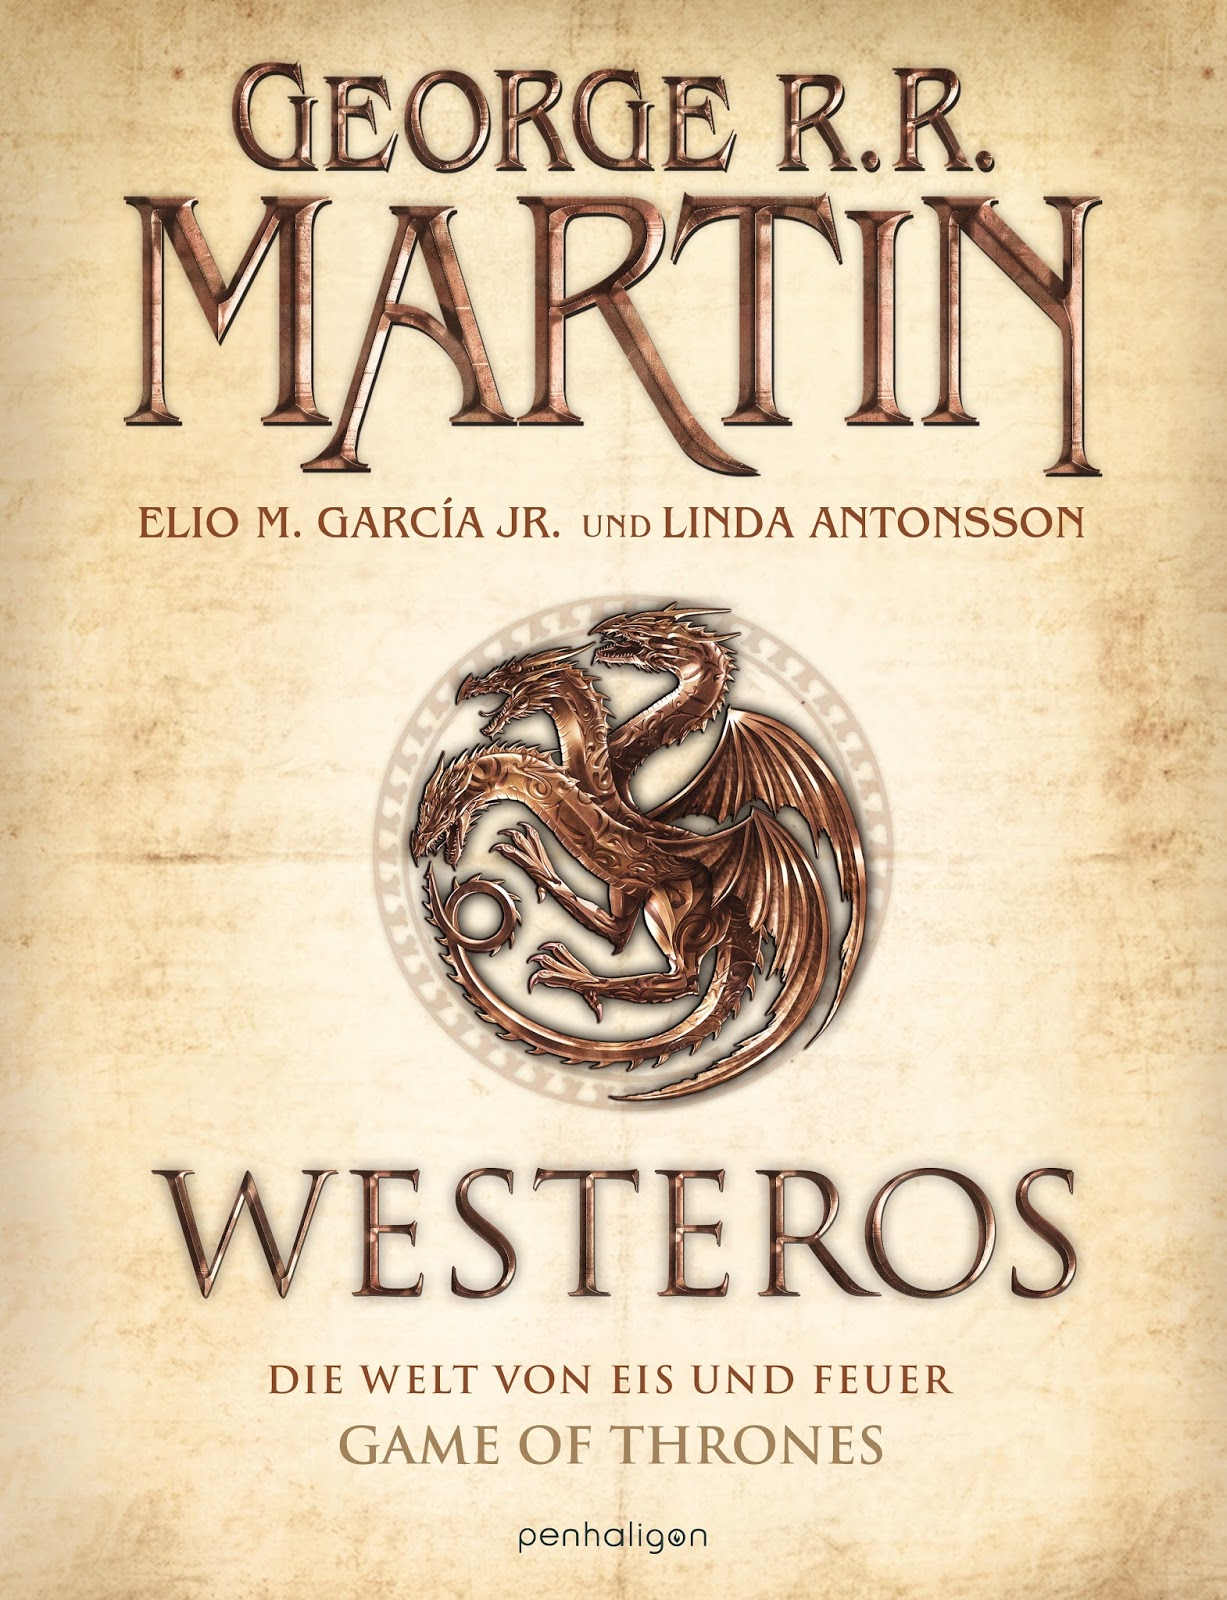 http://nothingbutn9erz.blogspot.co.at/2015/03/westeros-bildband-george-r-r-martin-review.html